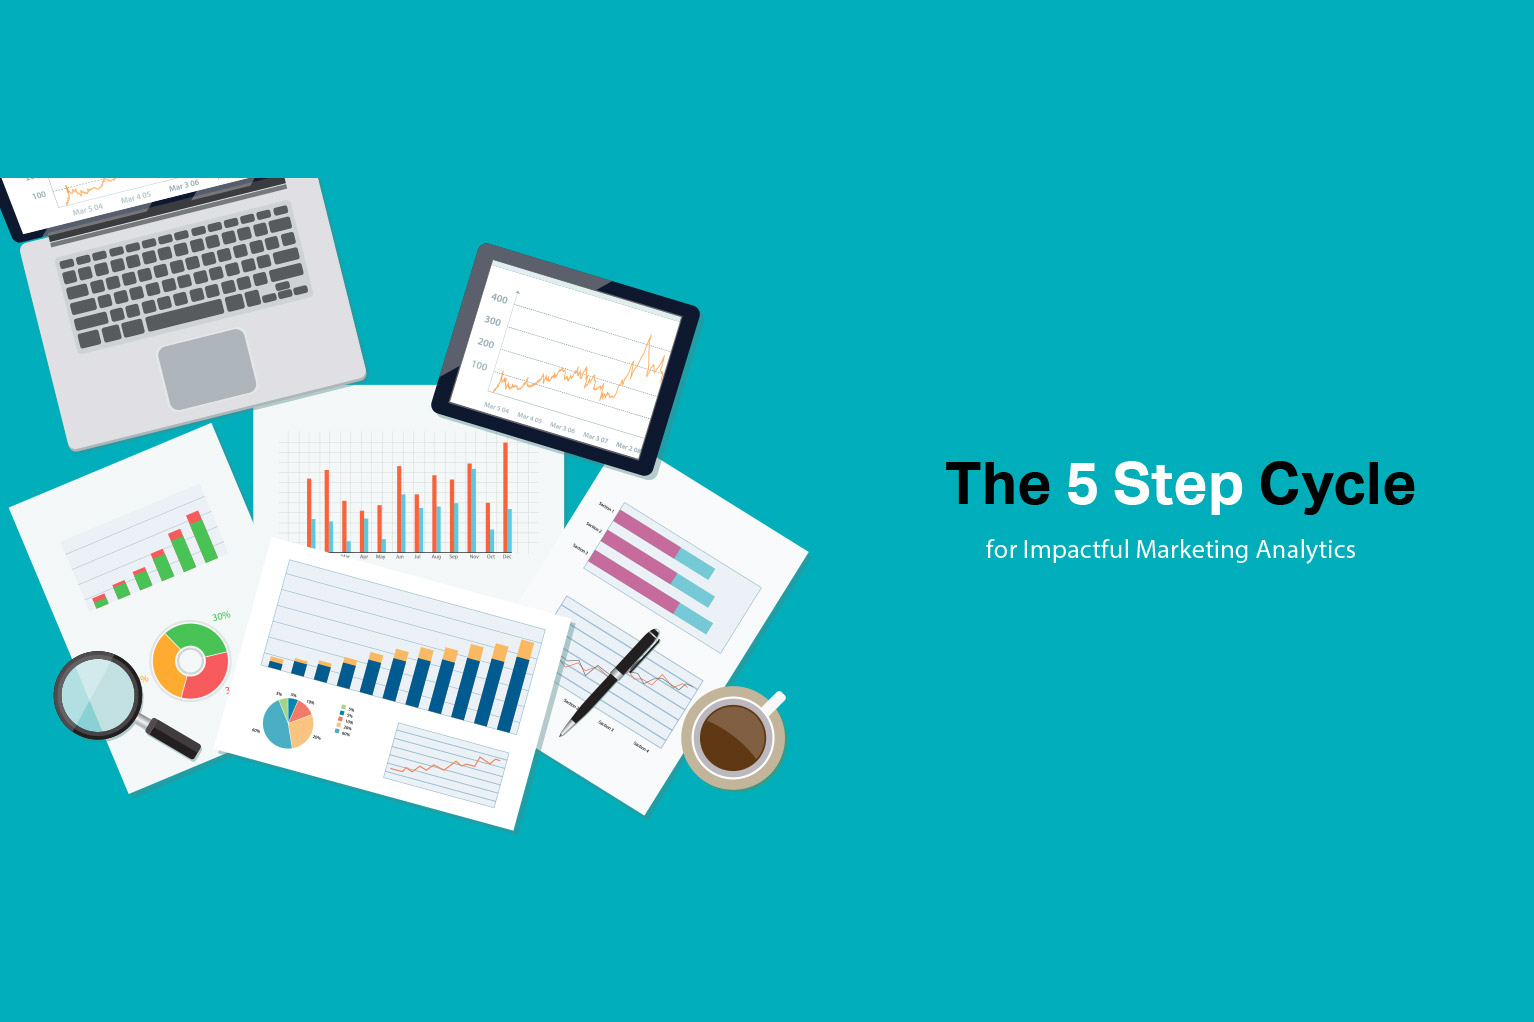 5 Step Cycle for Impactful Marketing Analytics